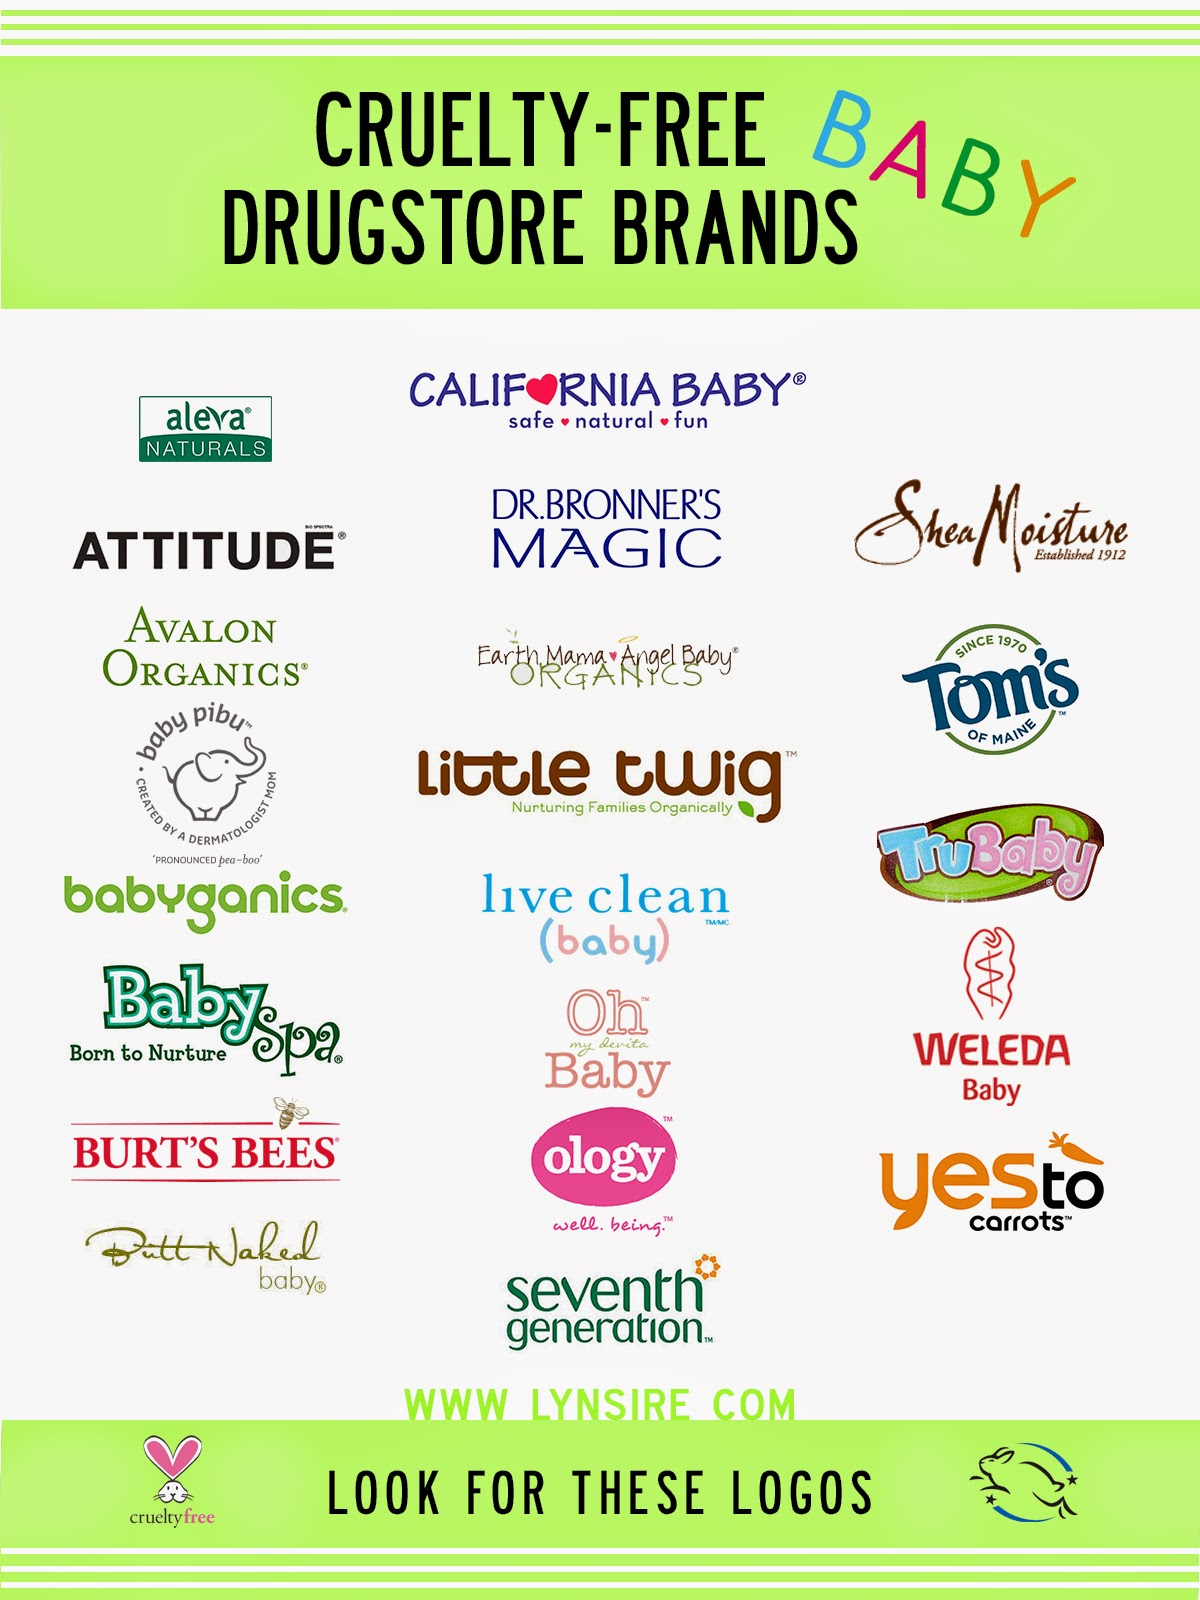 Cruelty-Free, Baby, Drugstore Brands, No animal testing